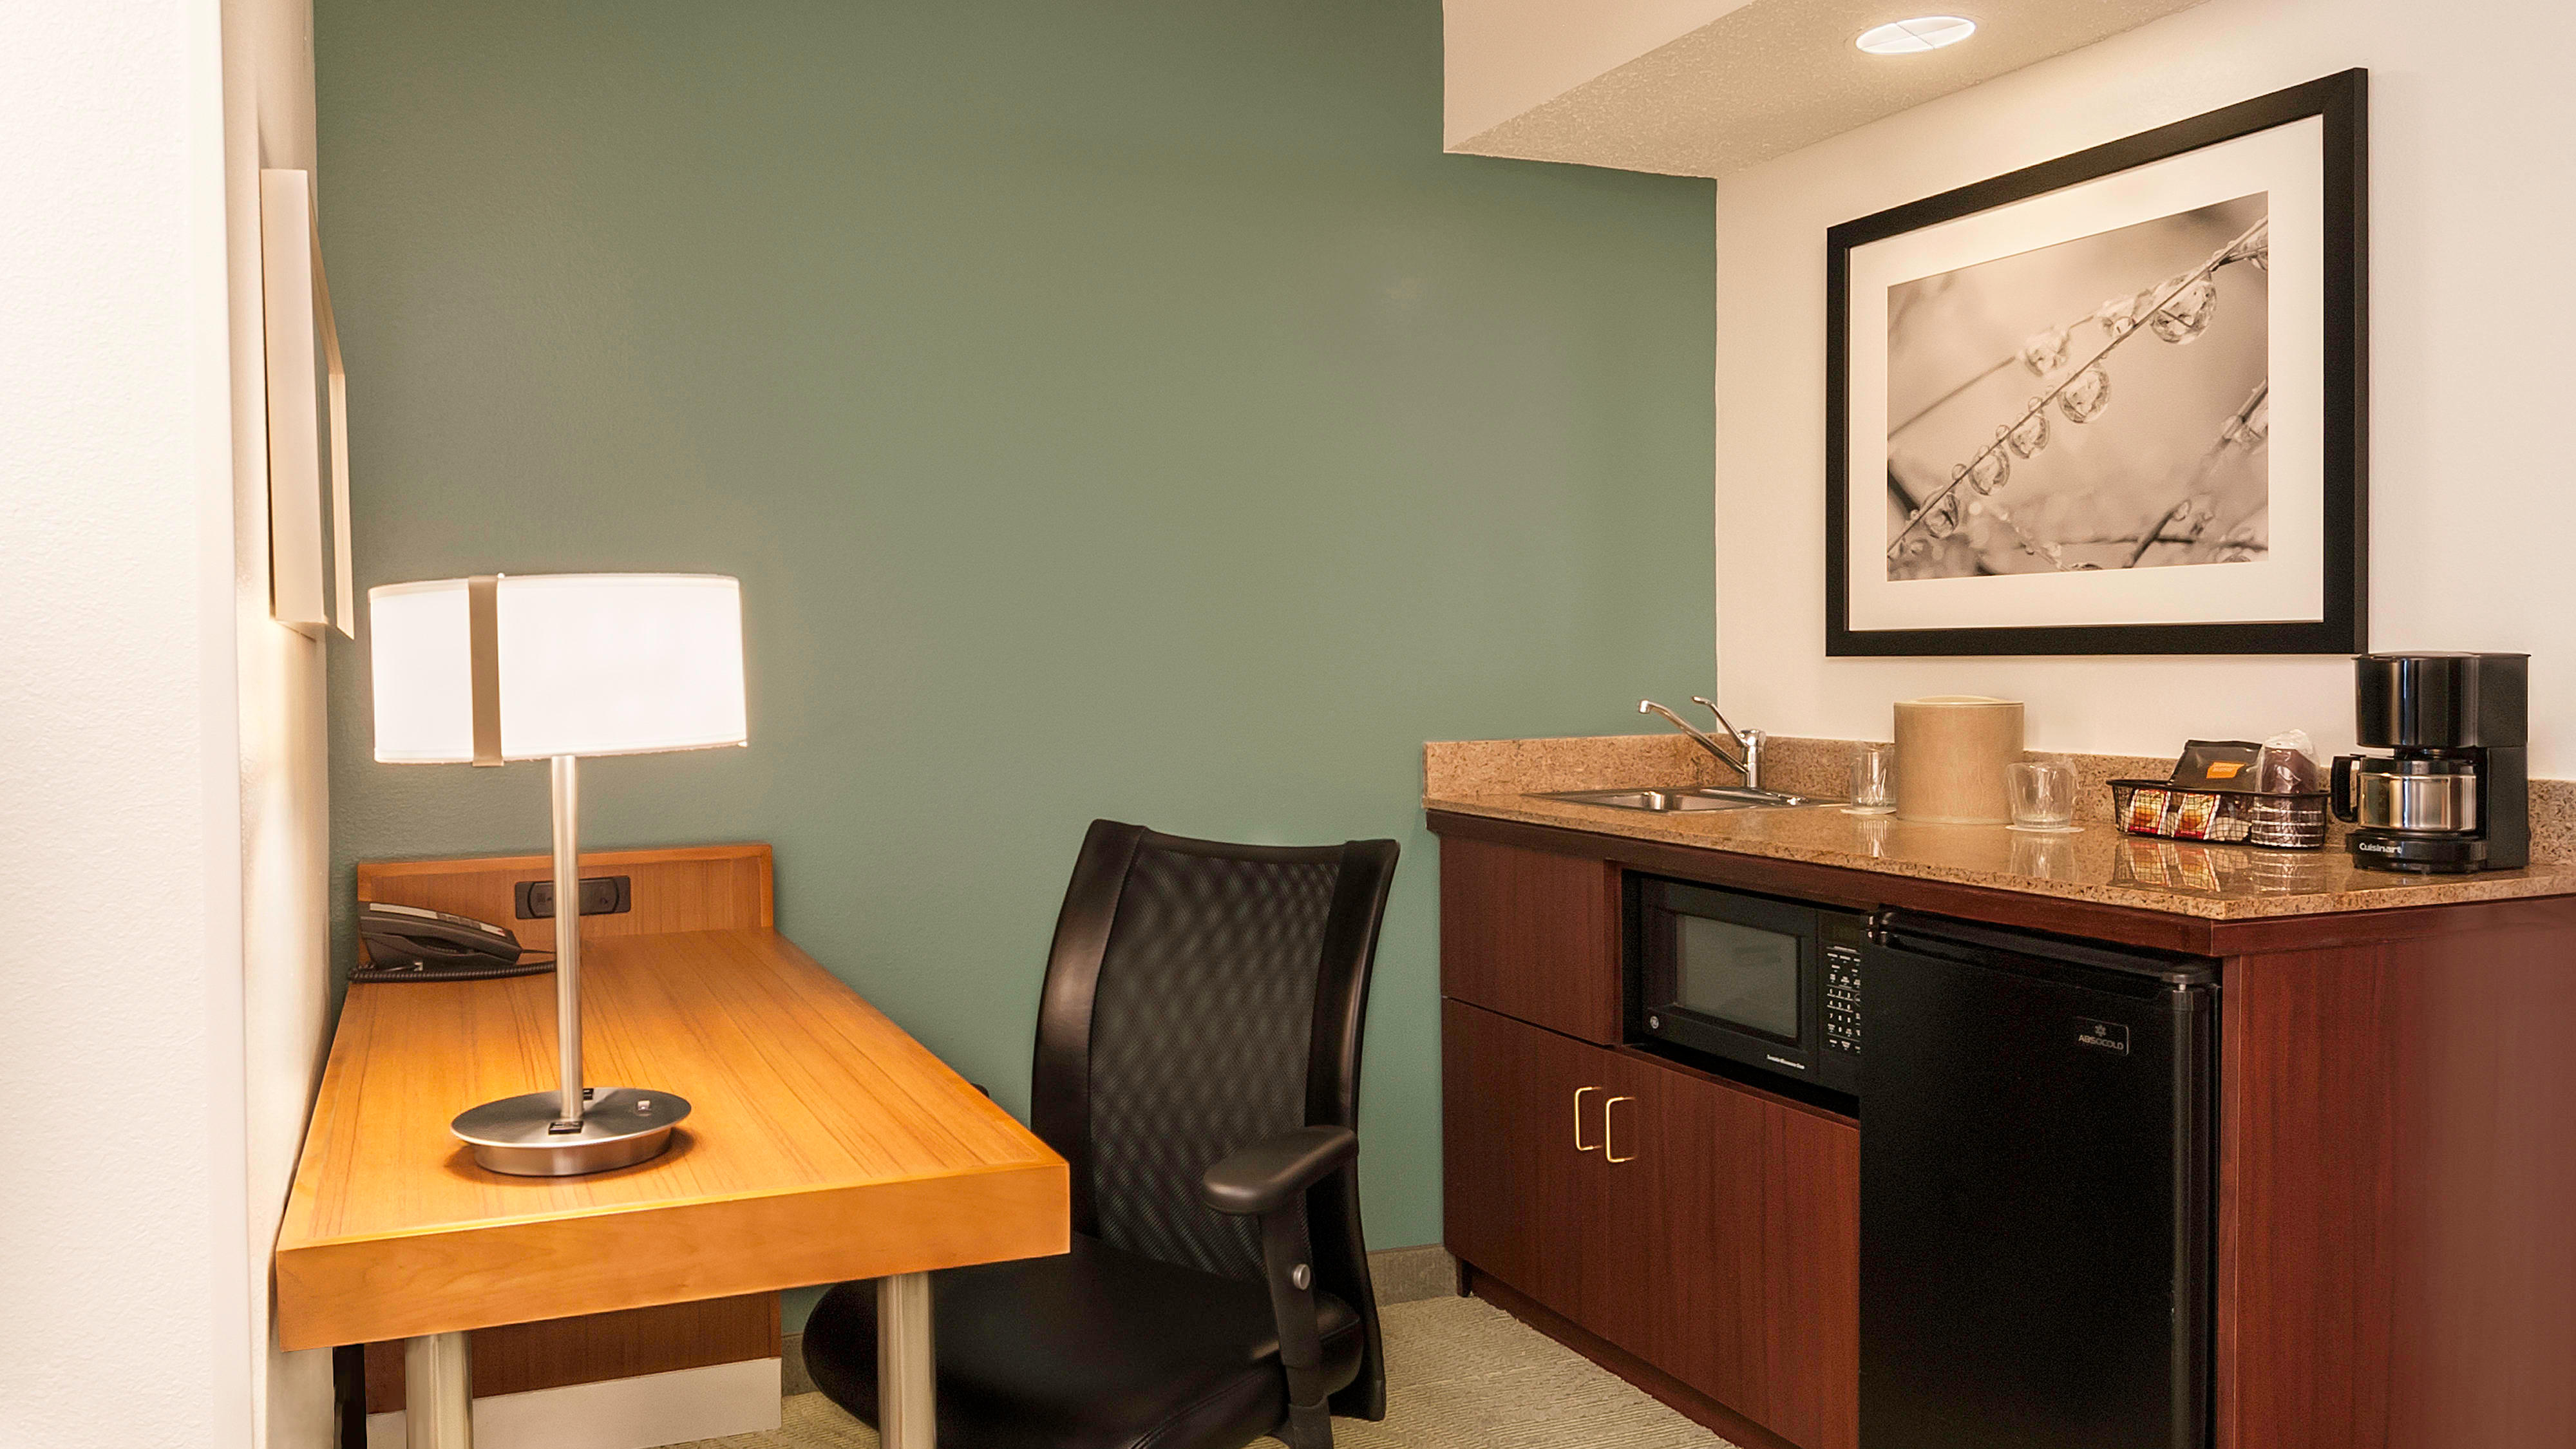 SpringHill Suites by Marriott Baton Rouge South image 8